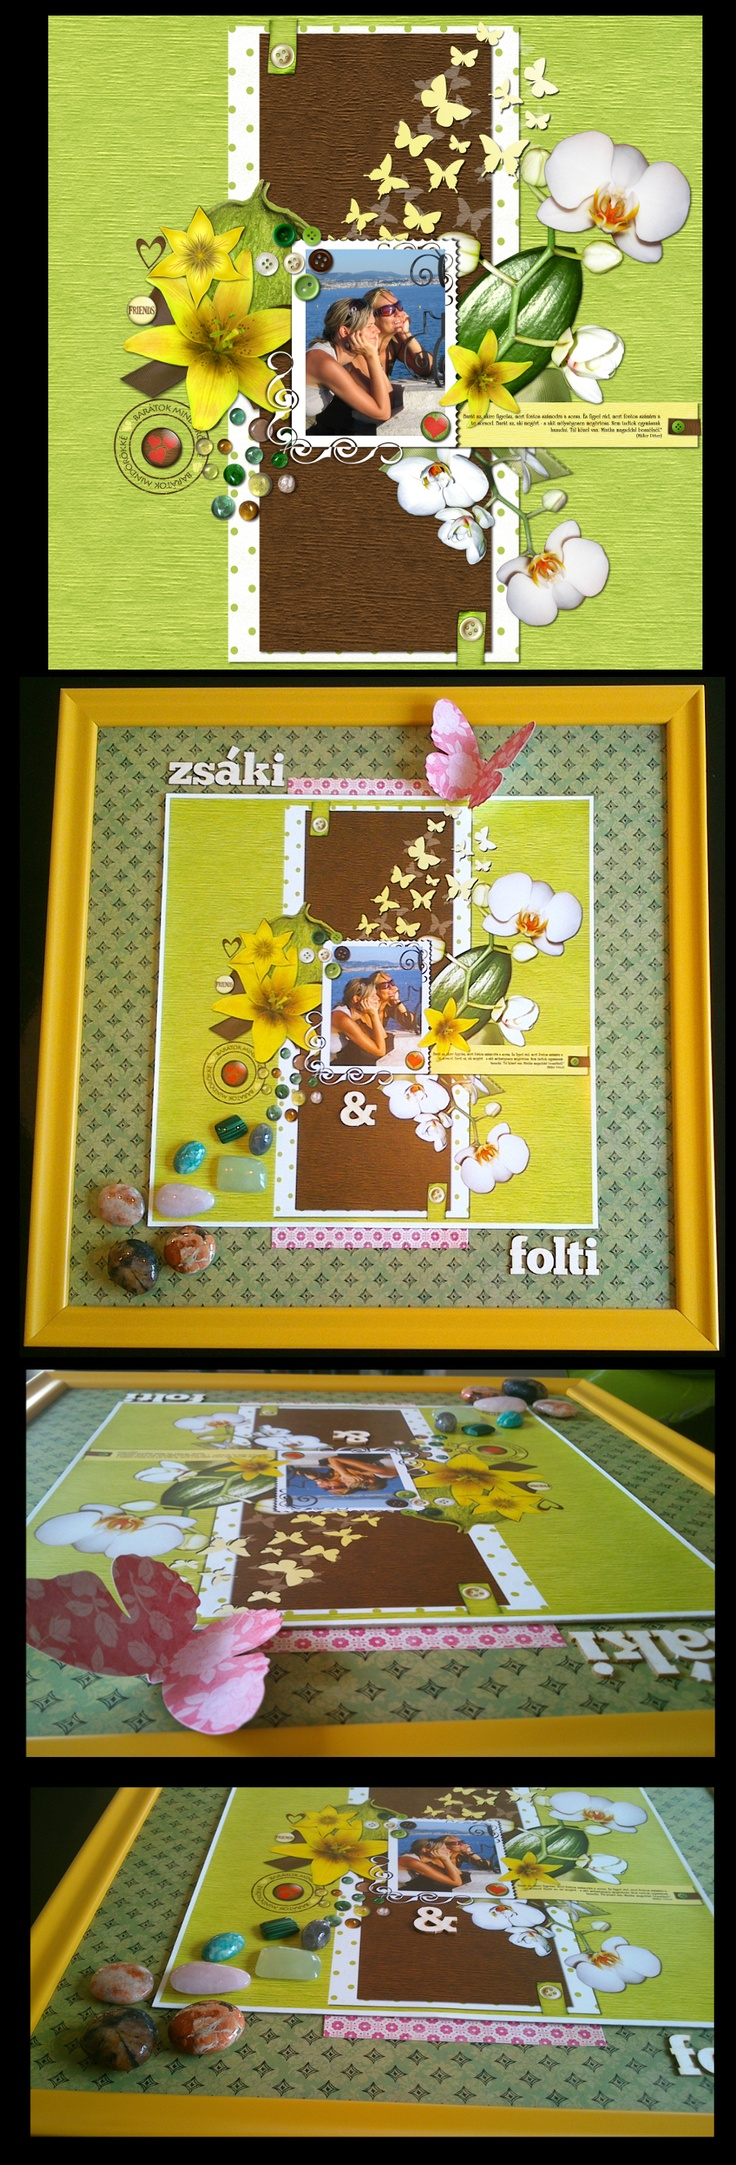 Digital to regional.  Digital scrap pic get frame, minerals, some decor and it goes to regular scrap.